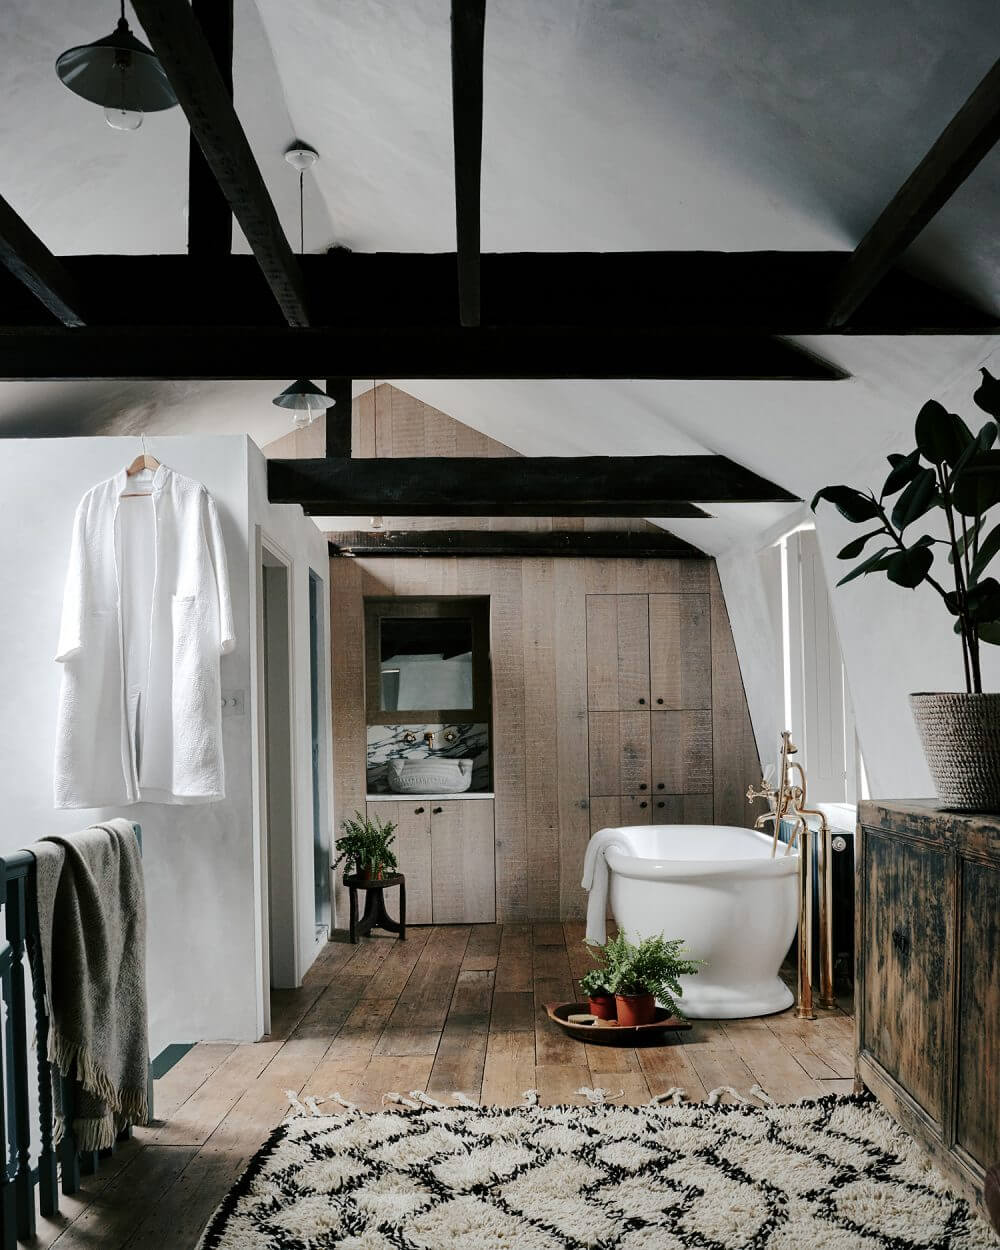 The Weavers House | A Calm Historic Home in East London